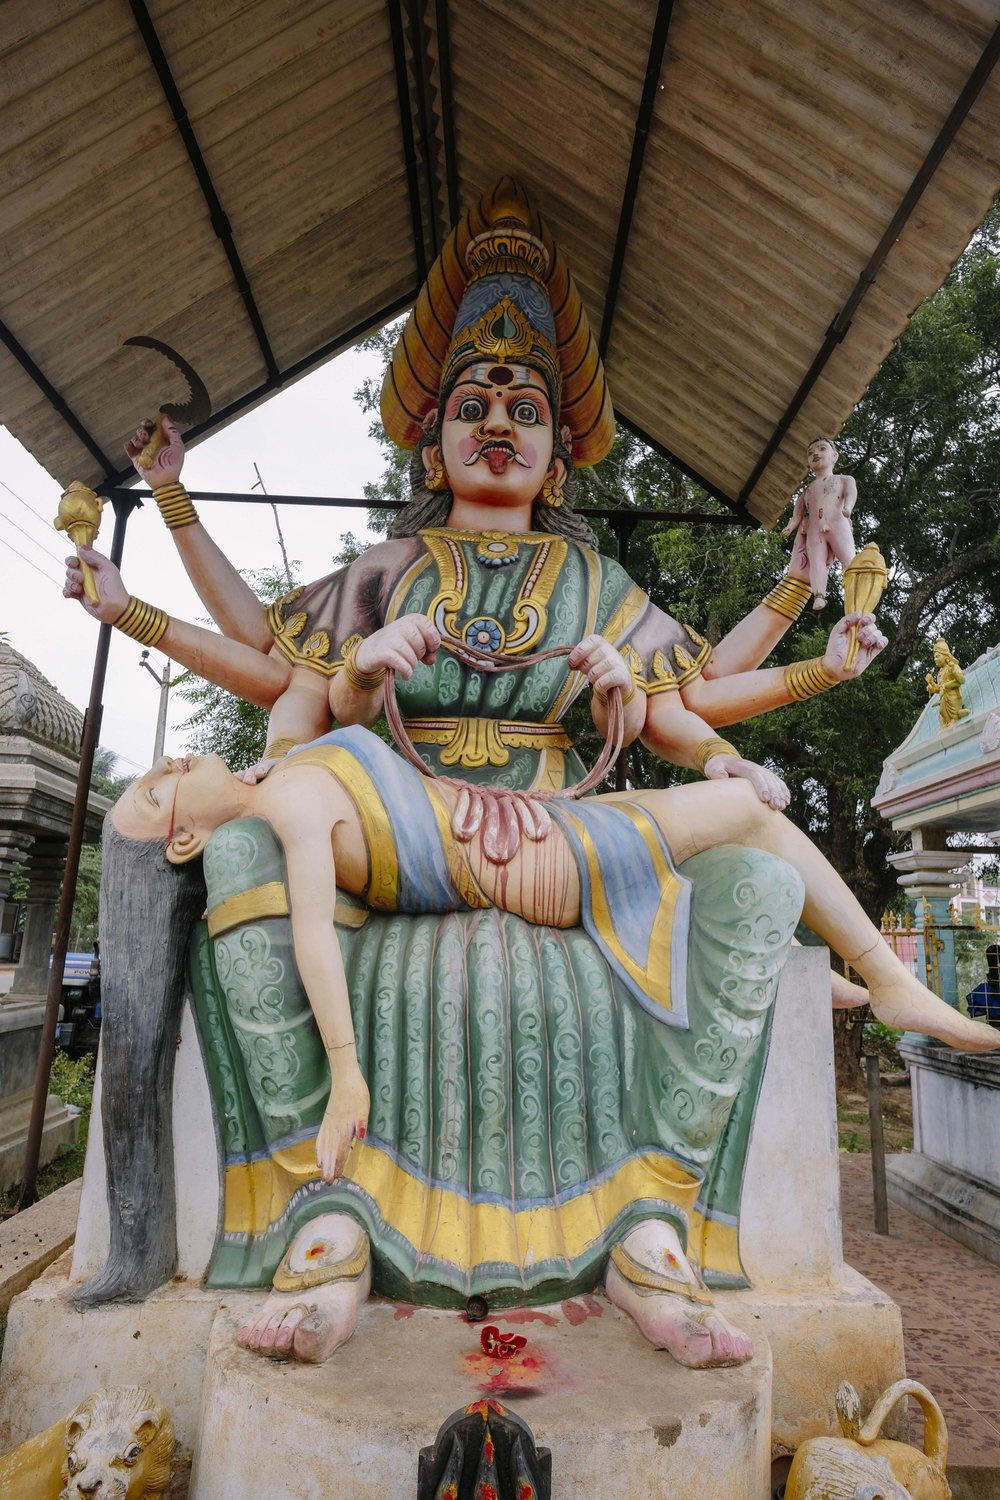 The goddess Kali can never be lodged in a glass cell, and she will have her due. This is a temple on the outskirts of Auroville.